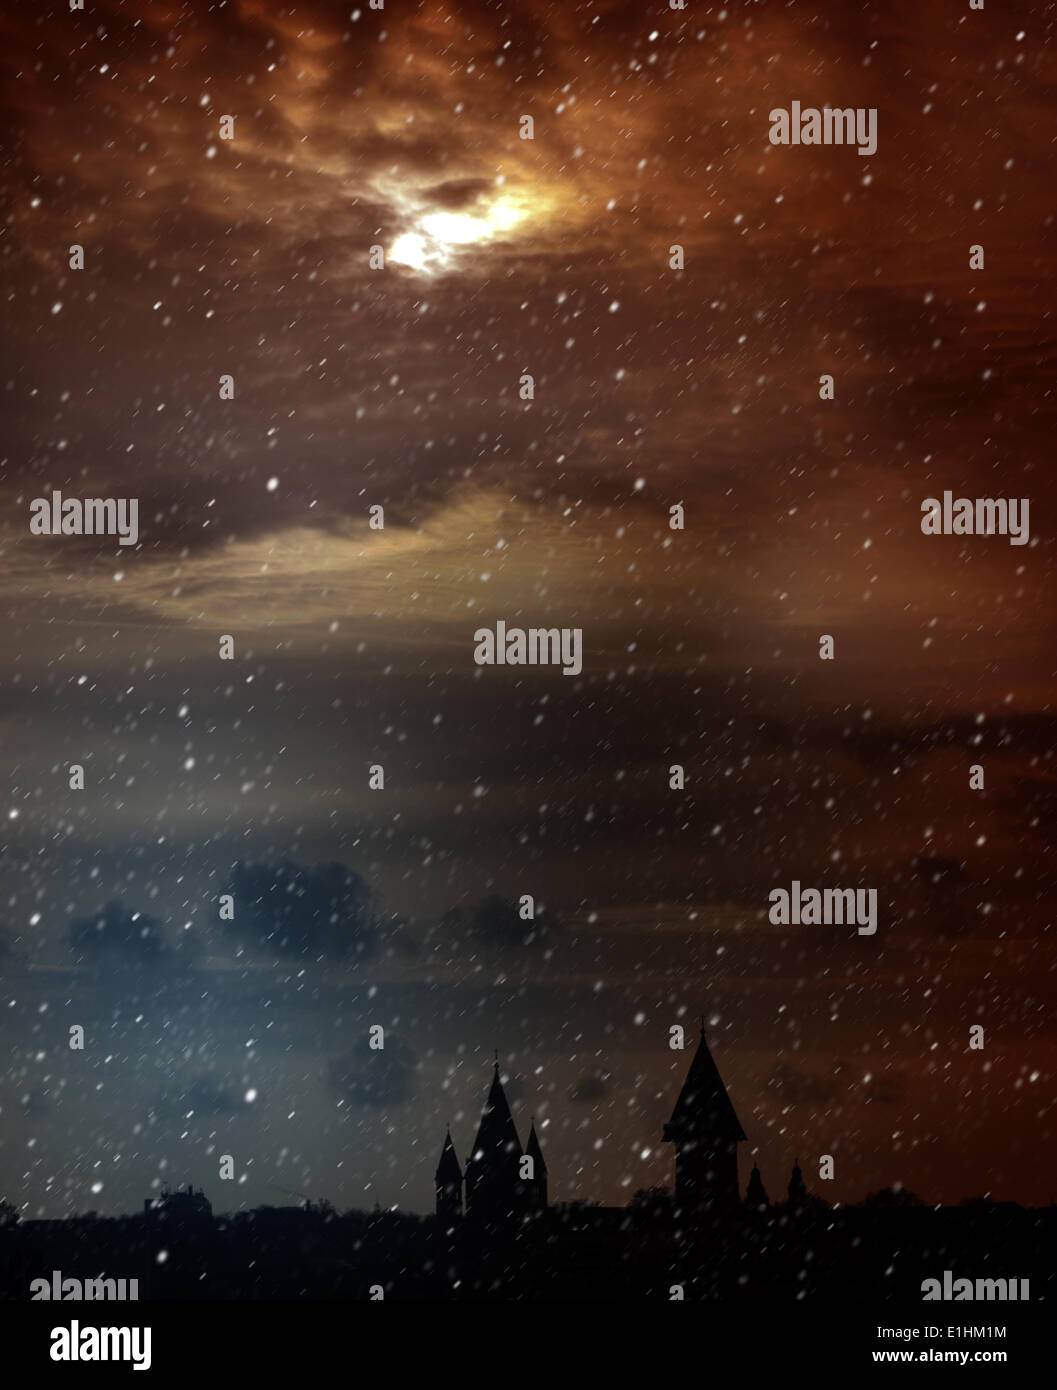 Twilight. Mysterious Scenic Landscape with Spooky Cloudy Moon - Stock Image